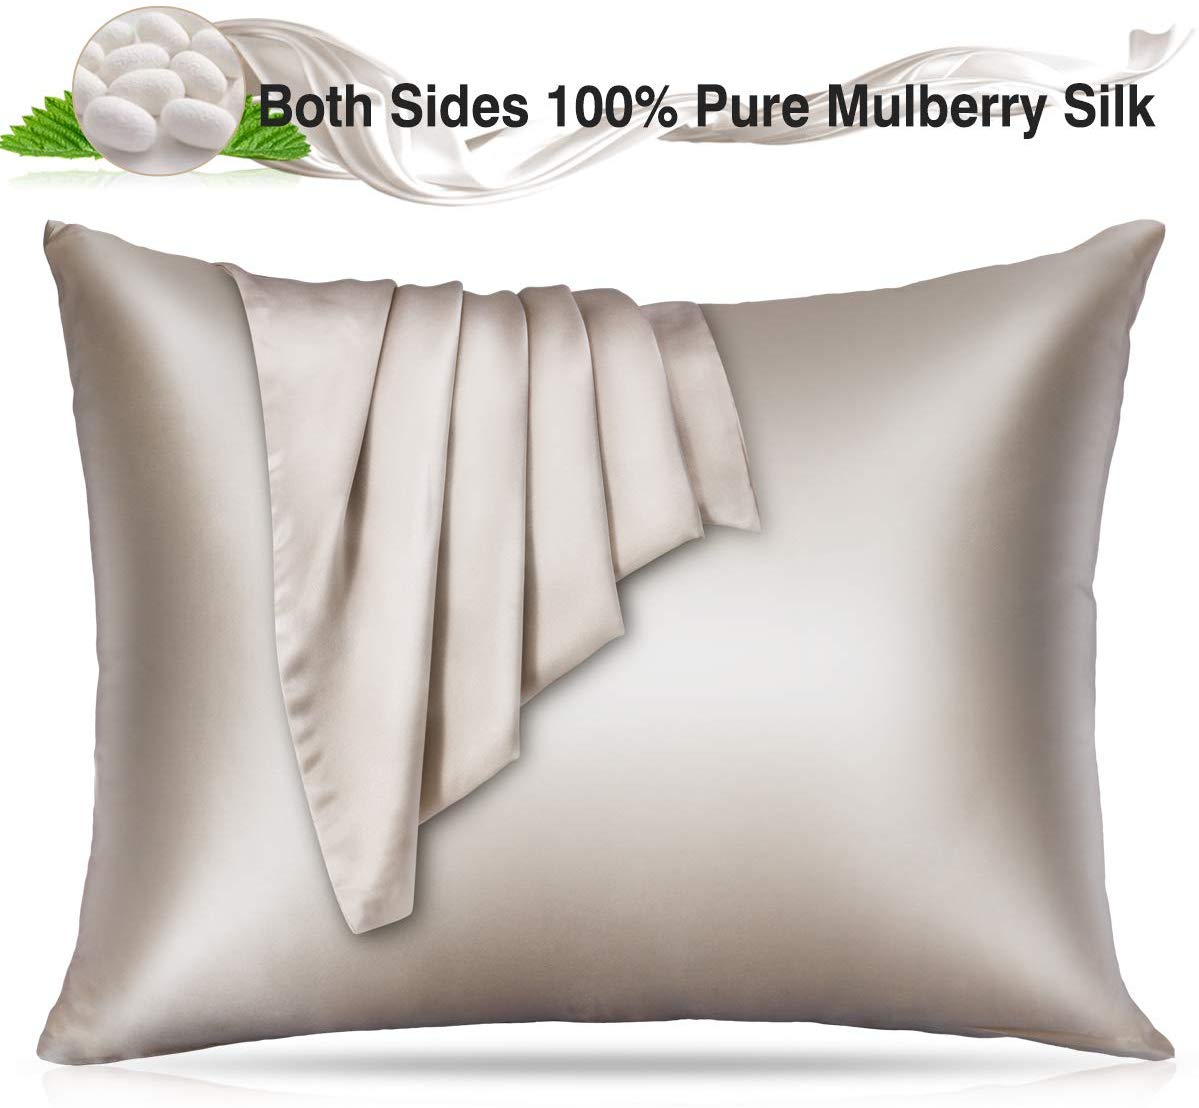 Villsure 100% Silk Pillowcase for Hair and Skin, 22 Momme Natural Mulberry Both Sides Hypoallergenic Pure Silk Pillow Cases with Hidden Zipper,Bed Silk Pillowcases Covers,1PC Standard Size- Apricot